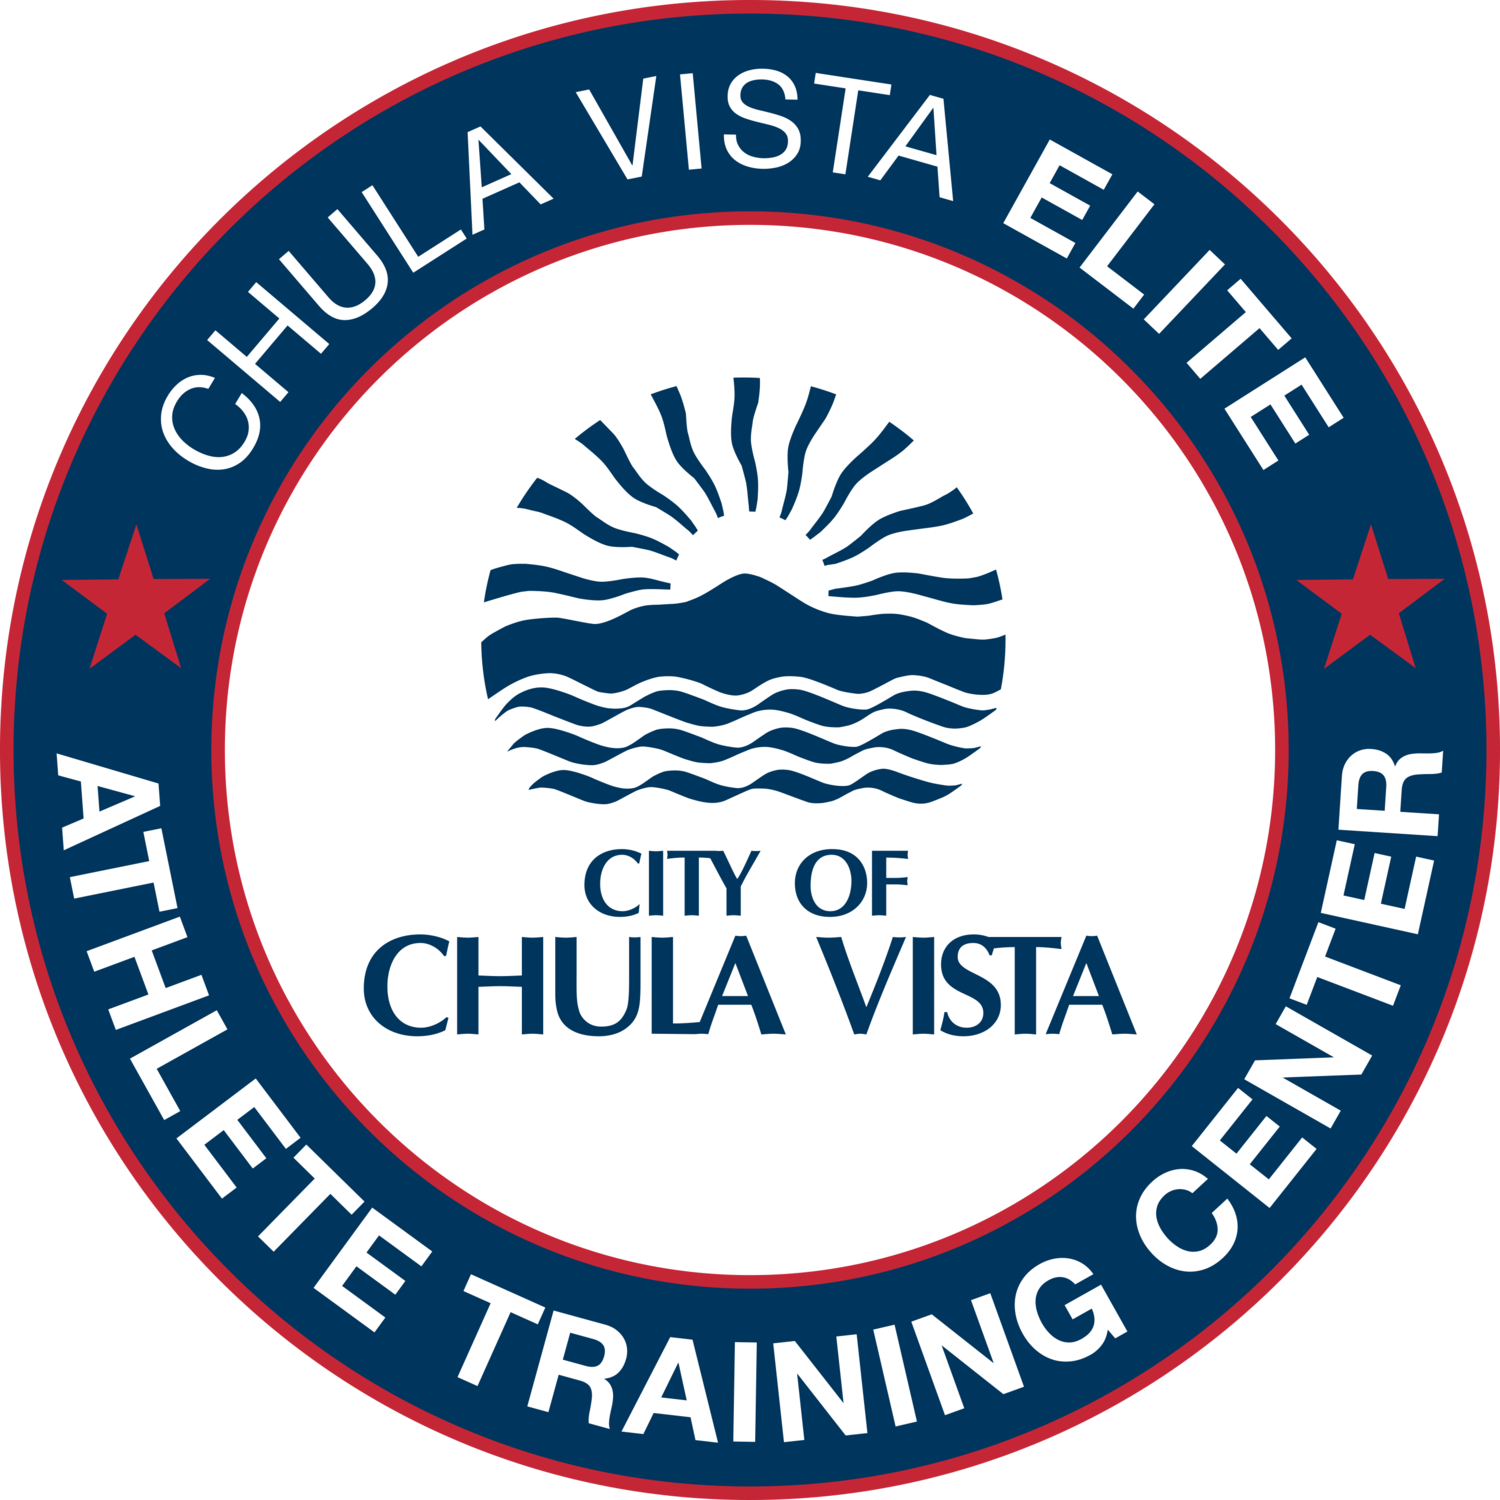 The Olympic Training Center of Chula Vista in San Diego, CA